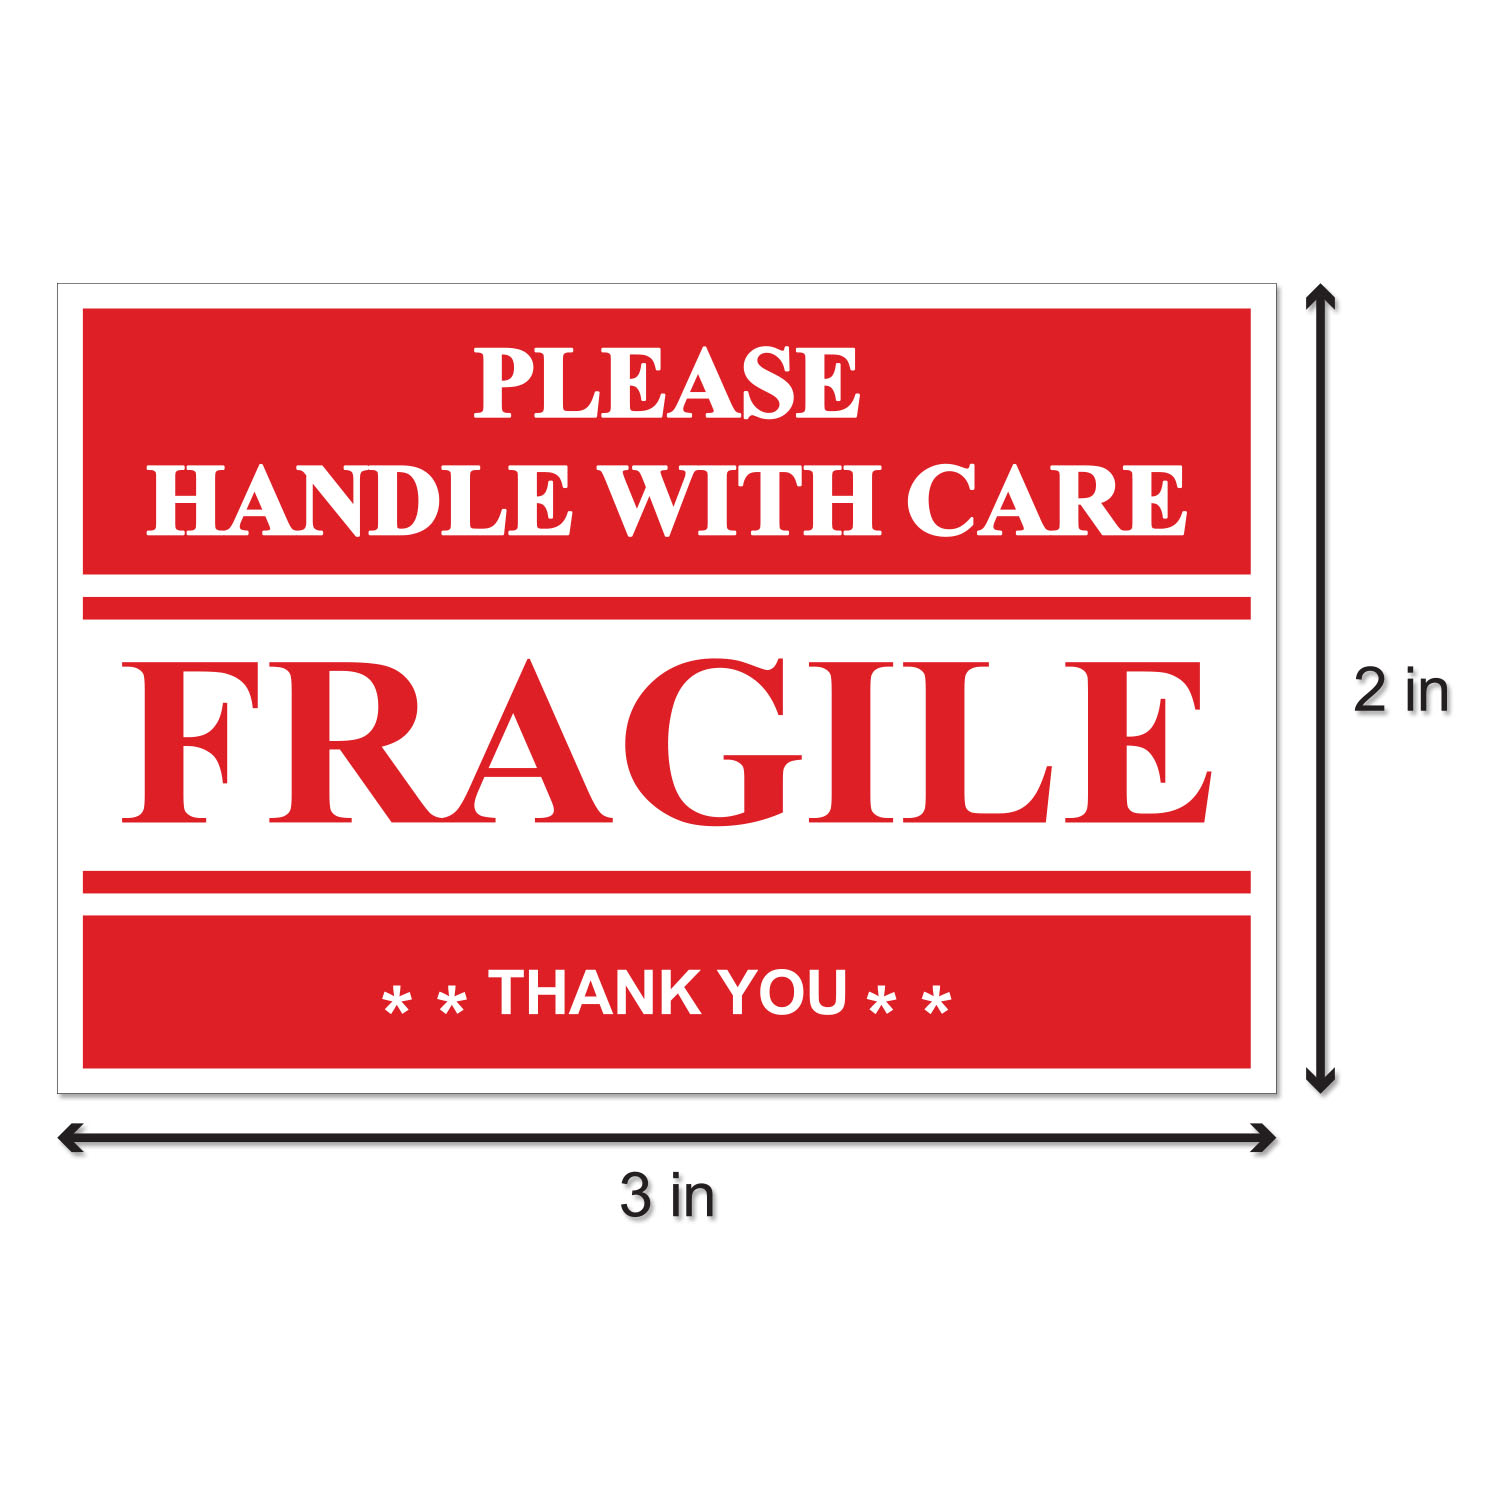 FRAGILE 160 Handle with care Labels Large Stickers